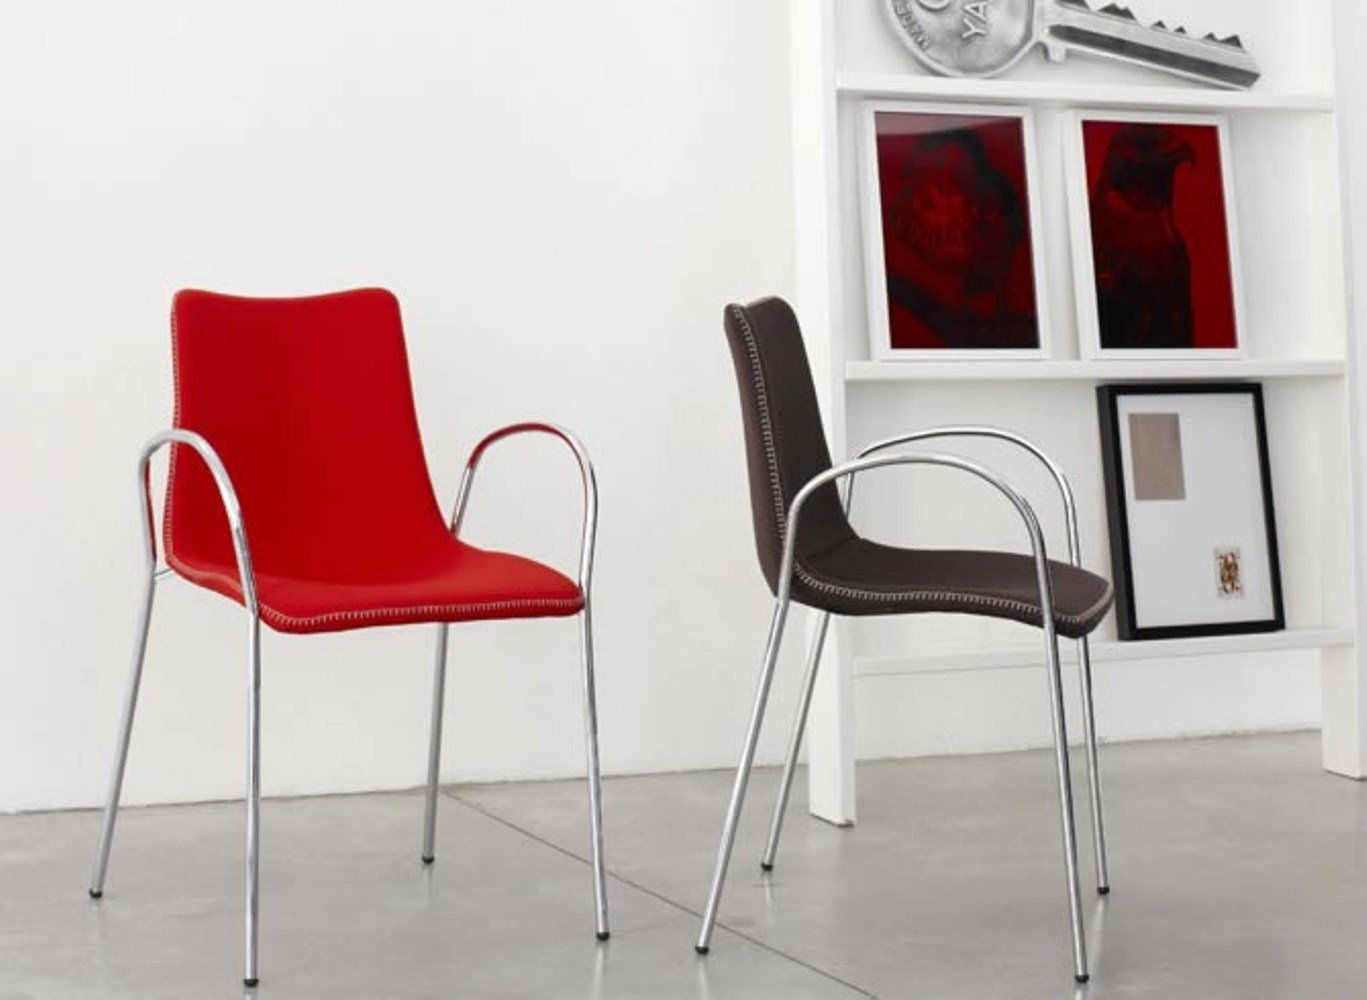 Parada One Design Zebra Pop Upholstered Dining Chair with Armrests, Polycarbonate Core and Chrome Legs, Brown Wool,Pack… - Main body: upholstered polycarbonate core, Frame: 16-millimeter chrome-plated tubular steel- 4-legs, with armrest Wool upholstered Suitable for indoor use only - kitchen-dining-room-furniture, kitchen-dining-room, kitchen-dining-room-chairs - 61iM%2By3l0 L -